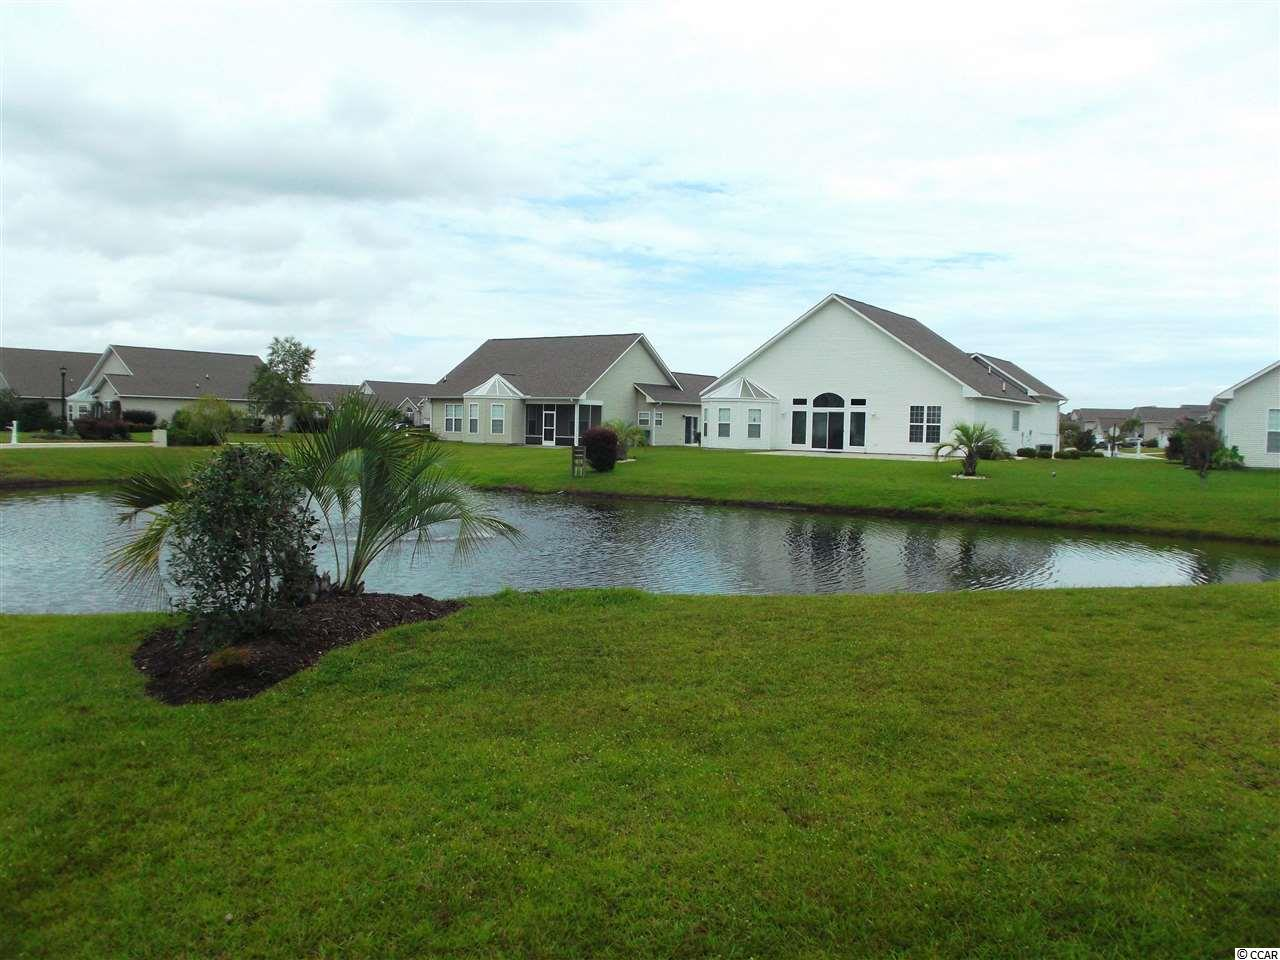 Surfside Beach Club - Clear Wate house for sale in Surfside Beach, SC